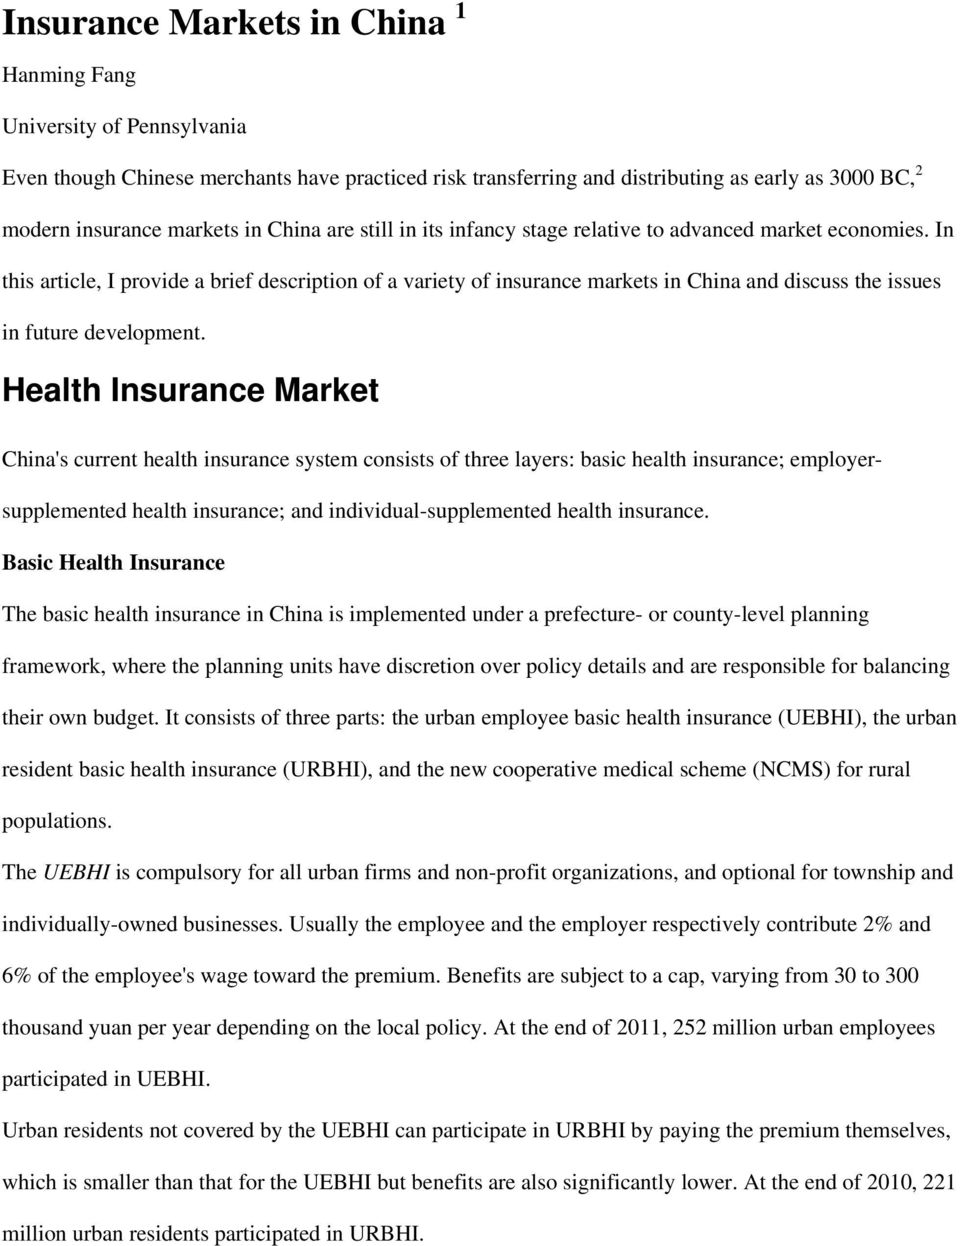 In this article, I provide a brief description of a variety of insurance markets in China and discuss the issues in future development.